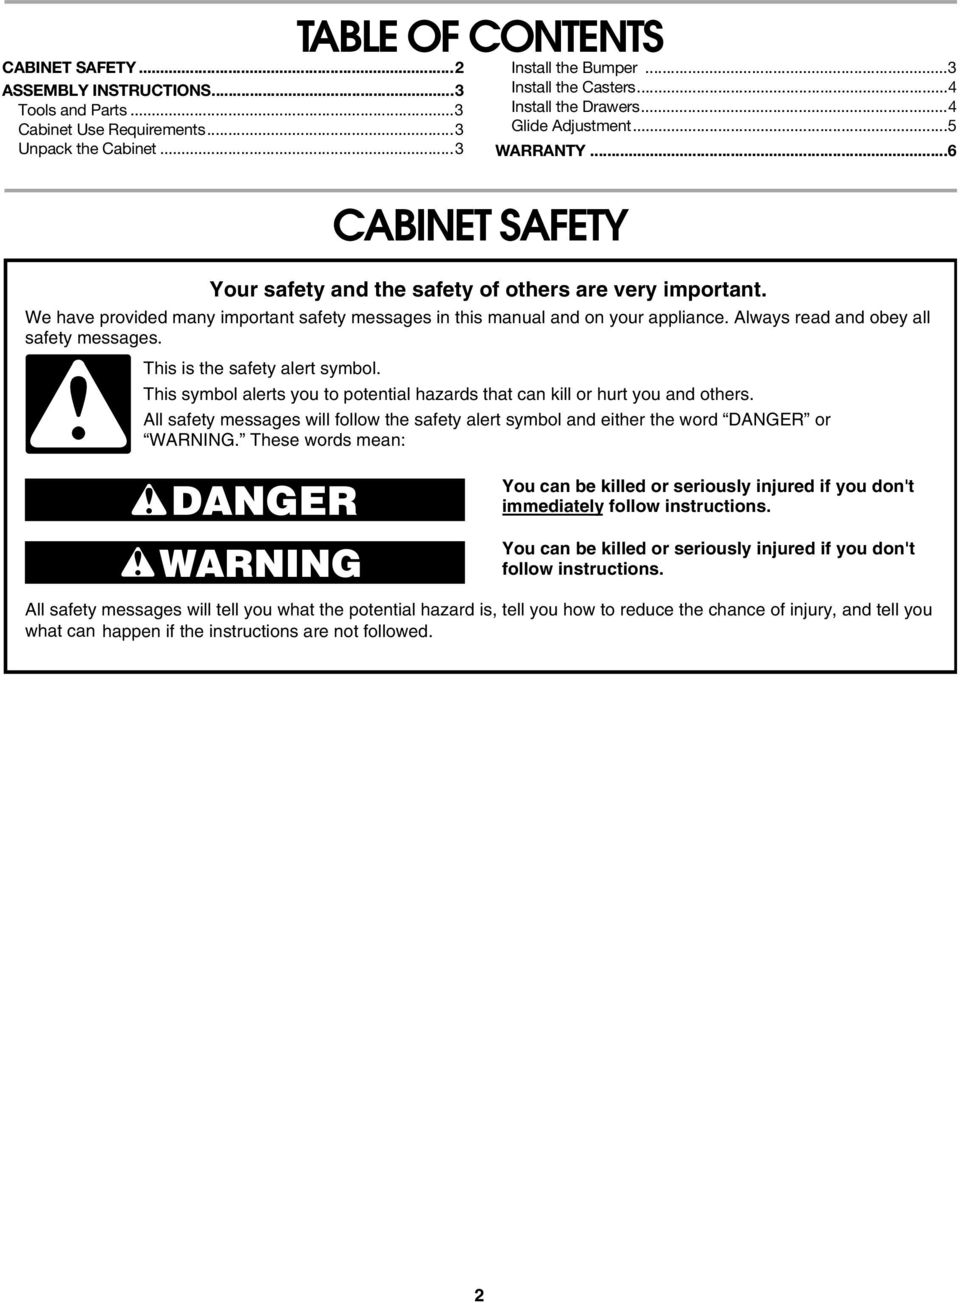 We have provided many important safety messages in this manual and on your appliance. Always read and obey all safety messages. This is the safety alert symbol.